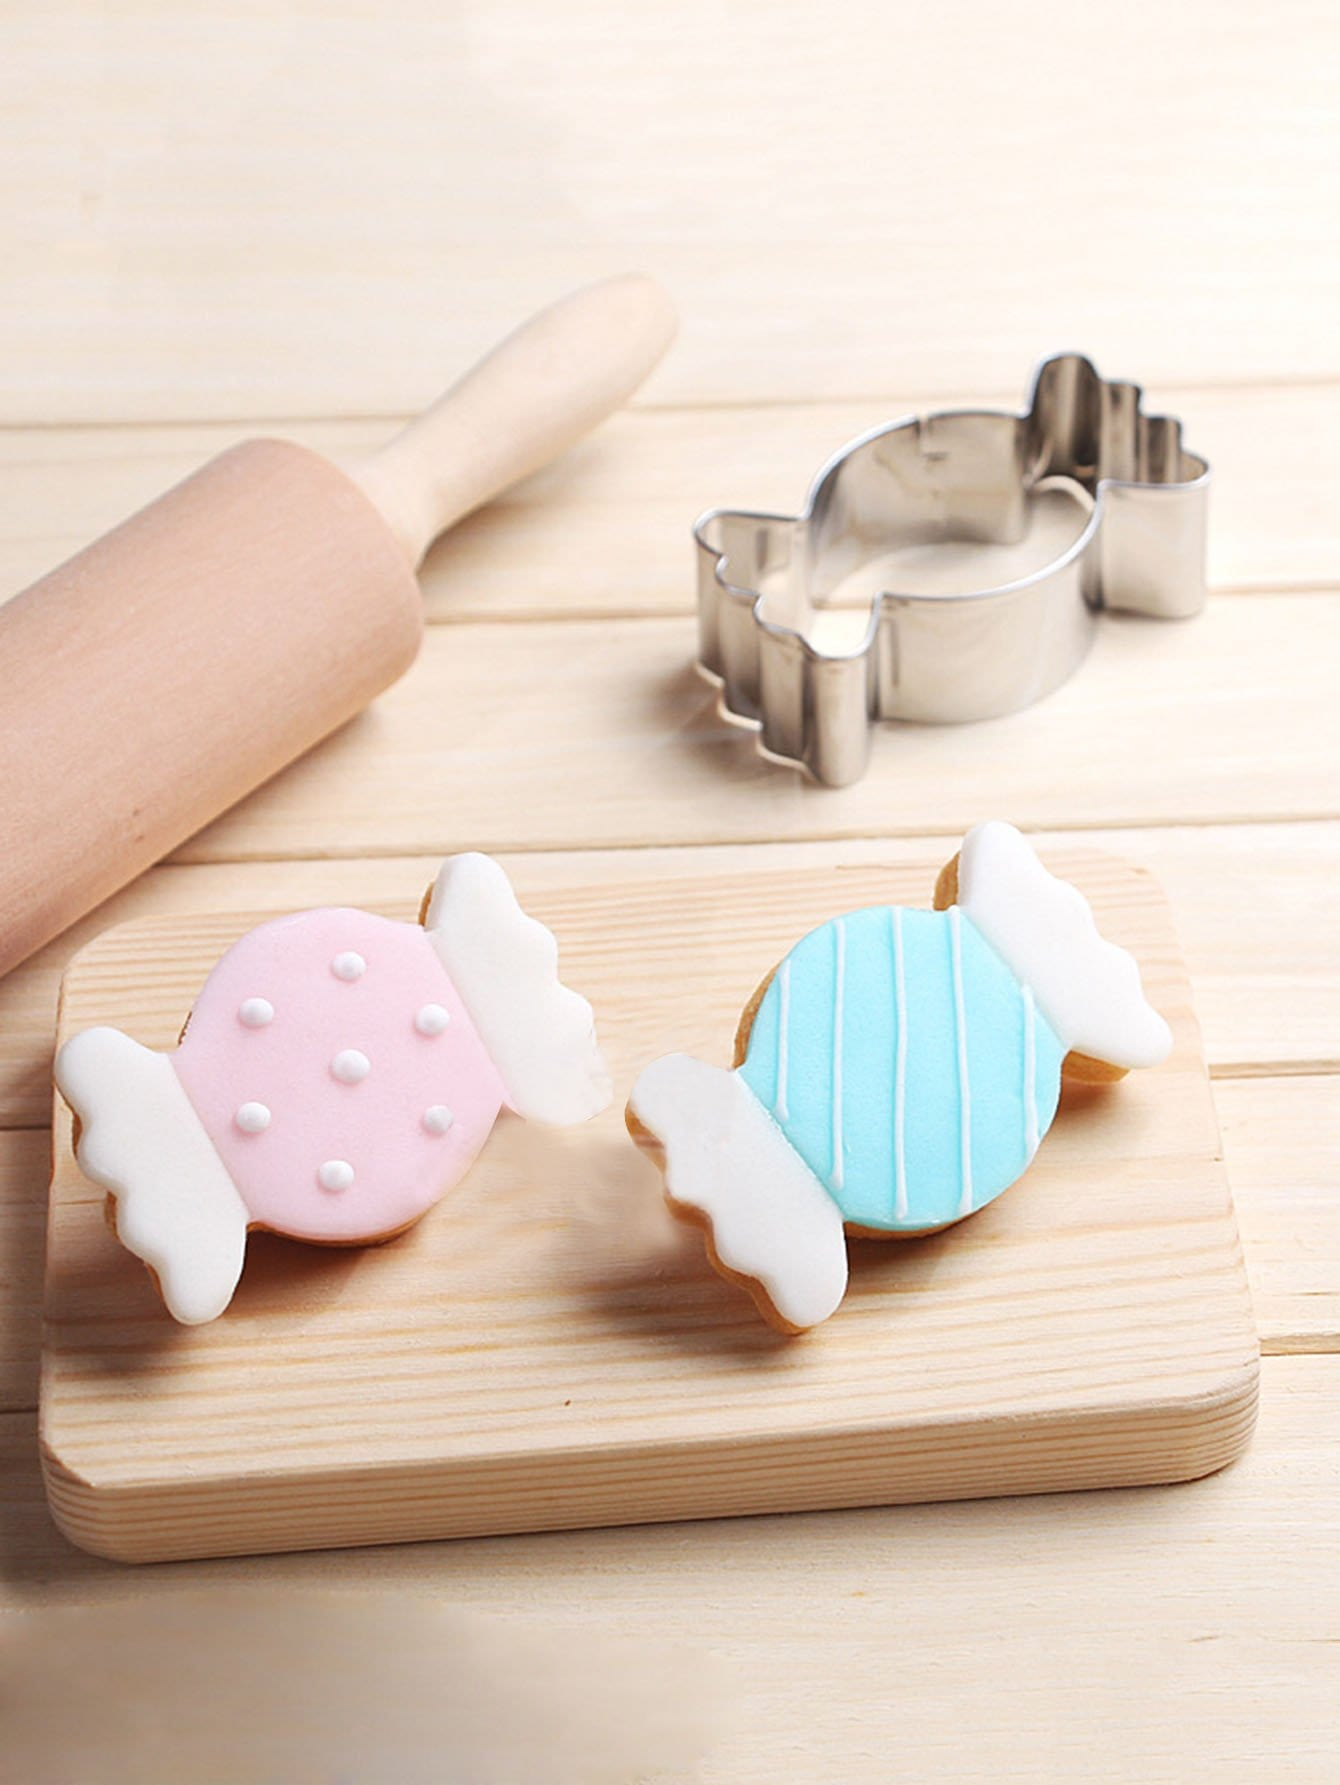 Stainless Steel Cookie Cutter Candy Mold 1pc dough cutter mold 3pcs